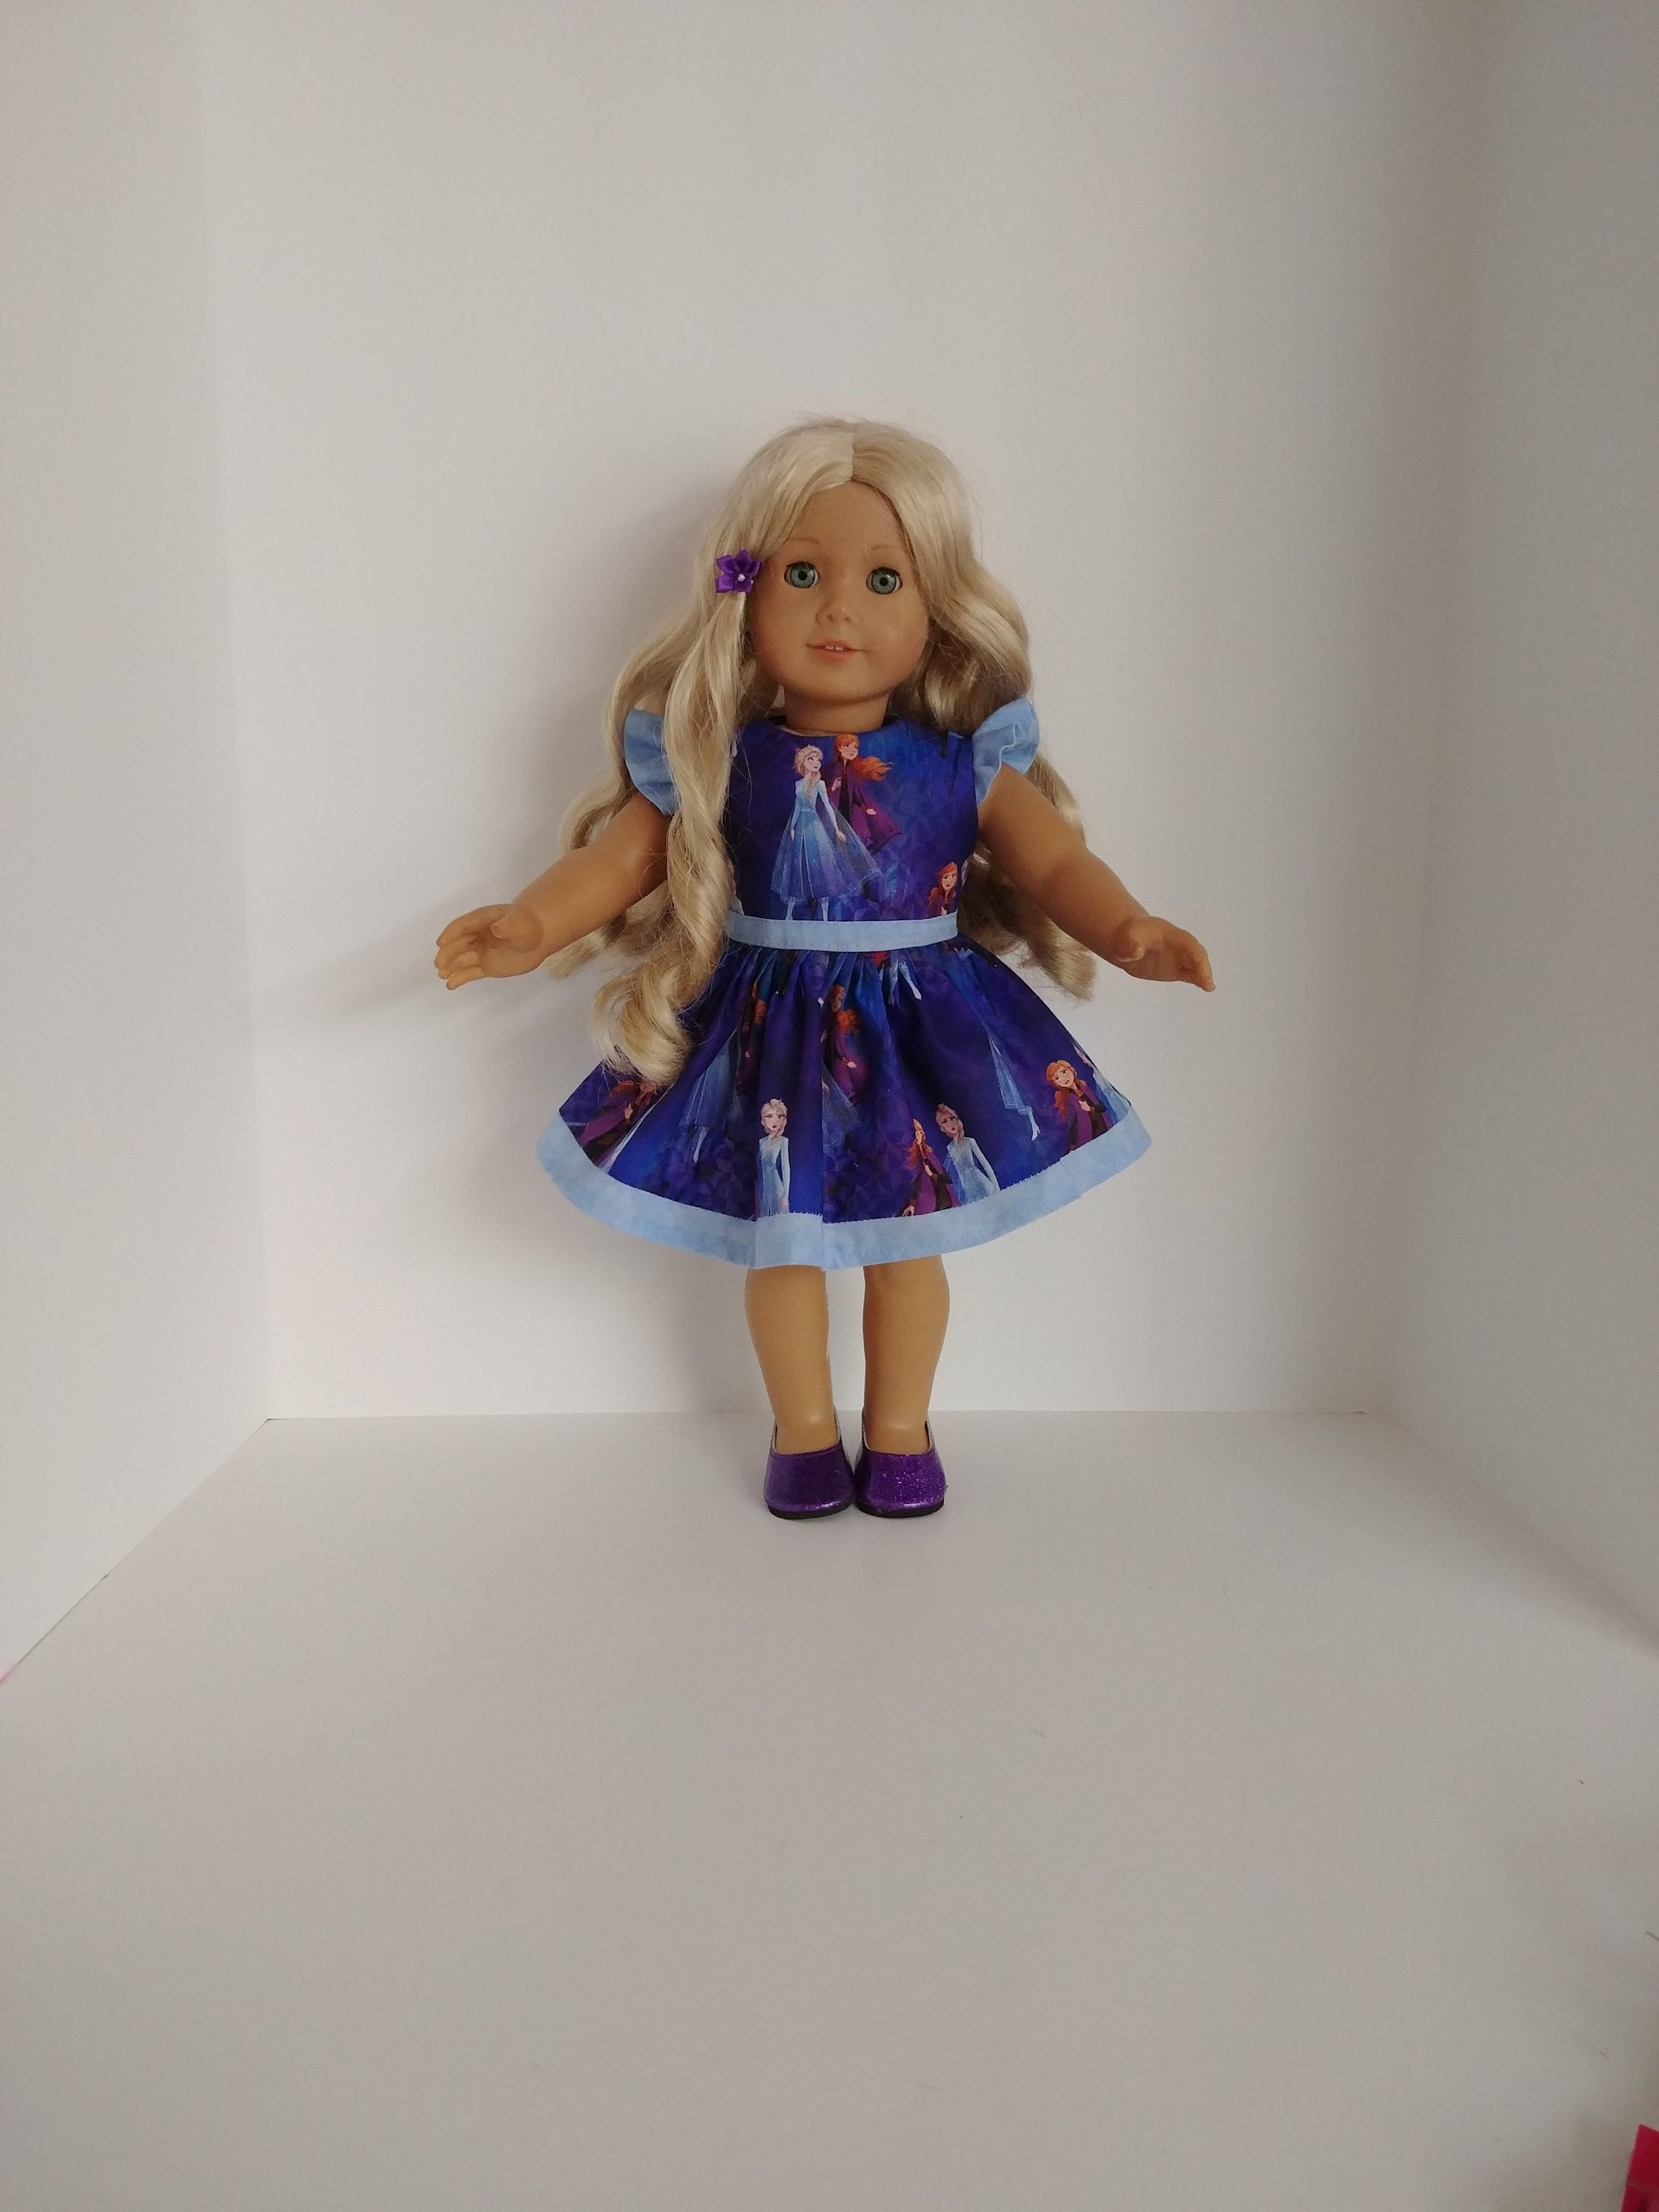 Frozen2 Ruffled Dress 18 inch doll clothes #18inchdollsandclothes